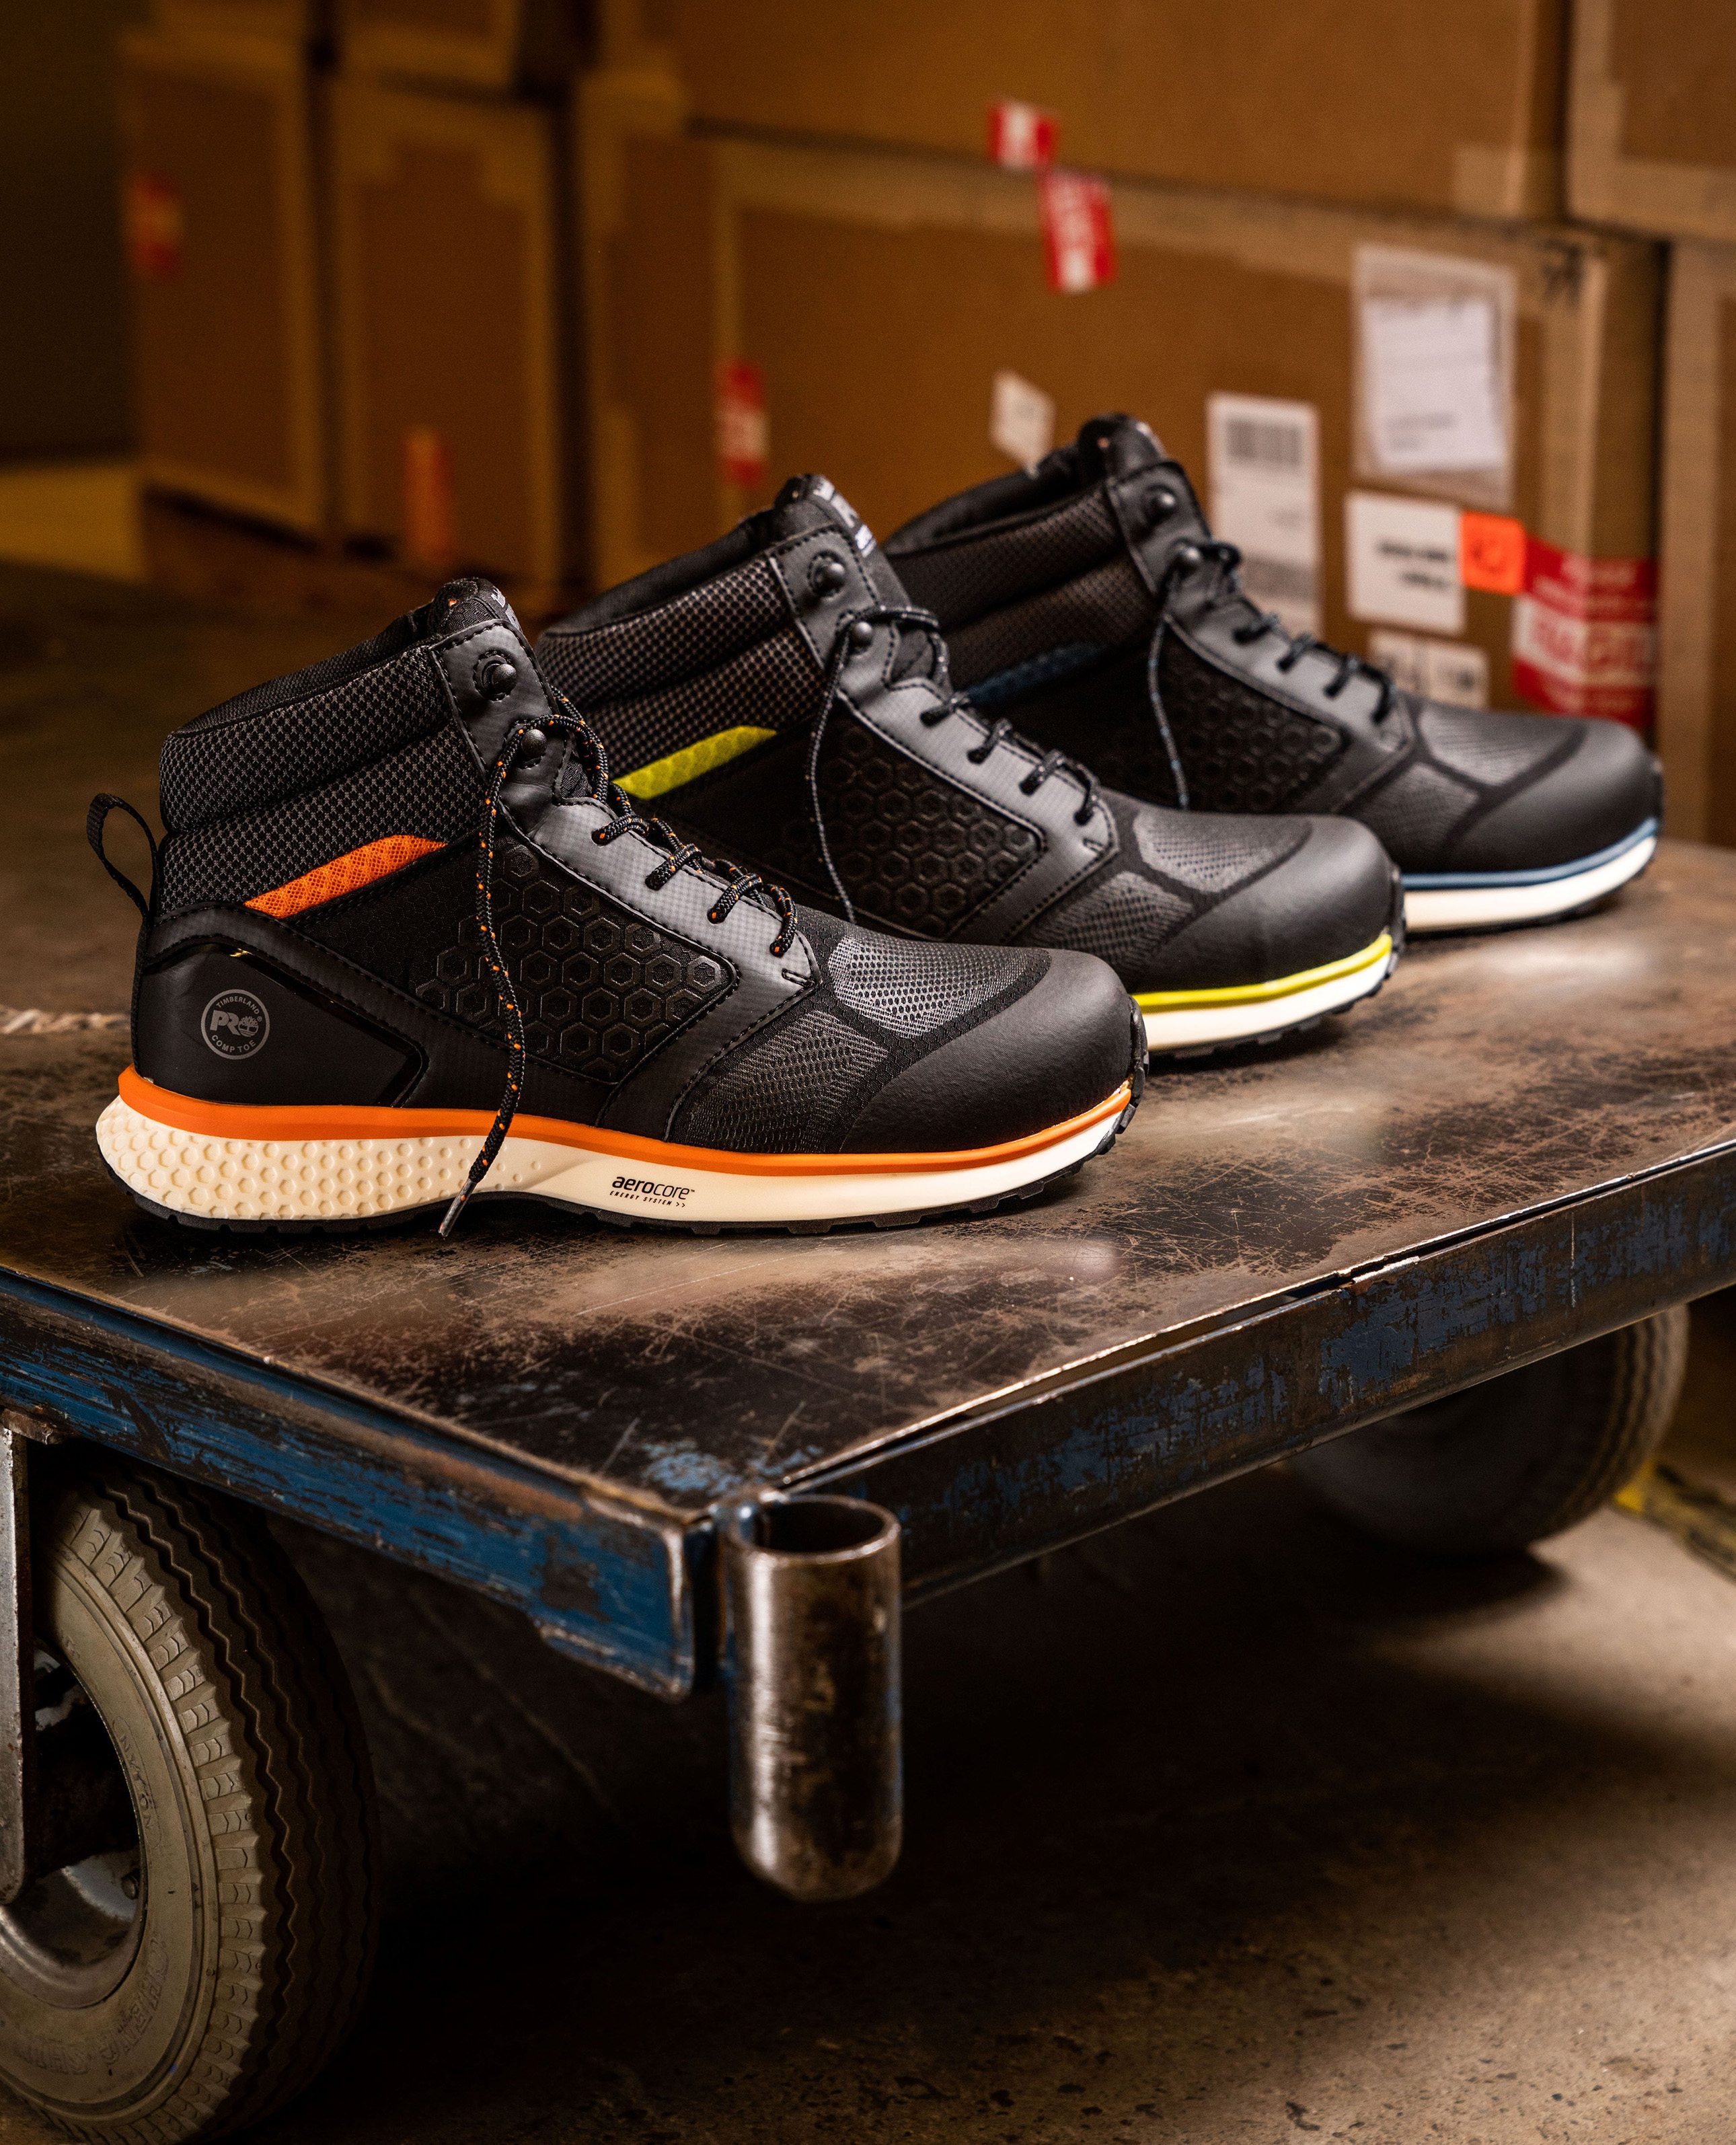 Timberland PRO Reaxion safety shoe